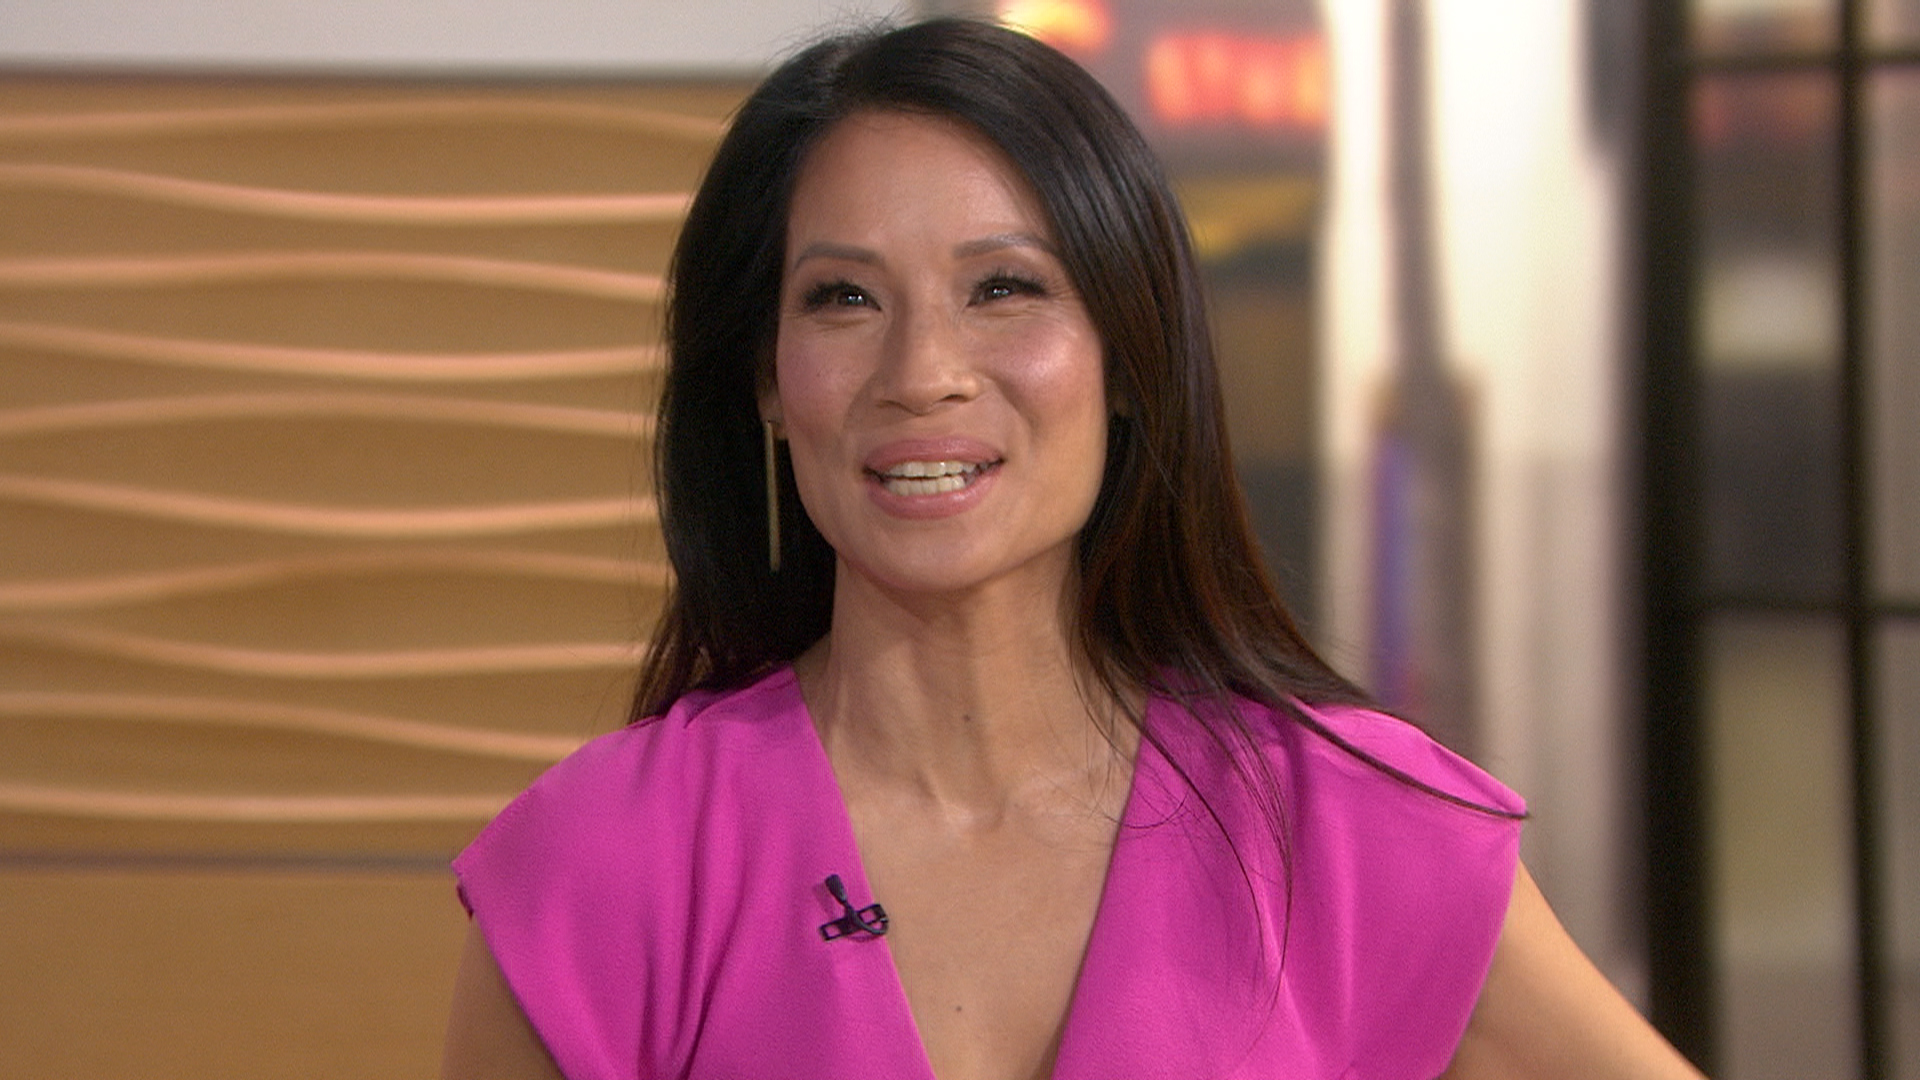 Lucy Liu: 'Every day is just a miracle' with newborn son Rockwell - TODAY.com